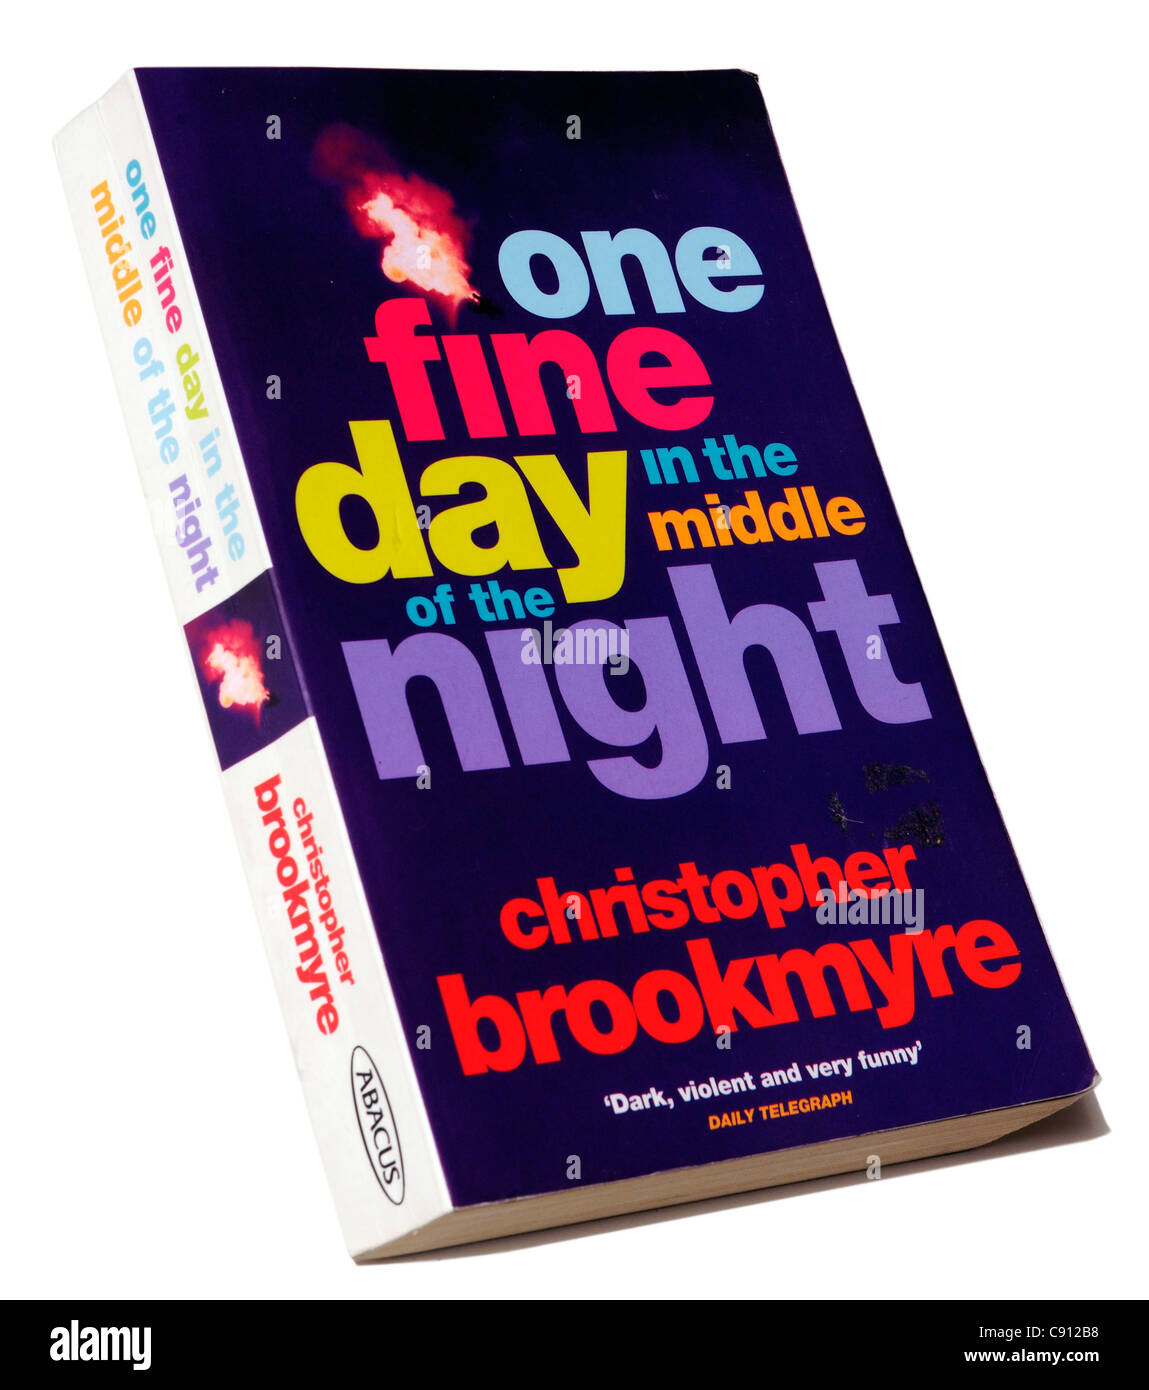 One Fine Day in the Middle of the Night by Christopher Brookmyre - Stock Image